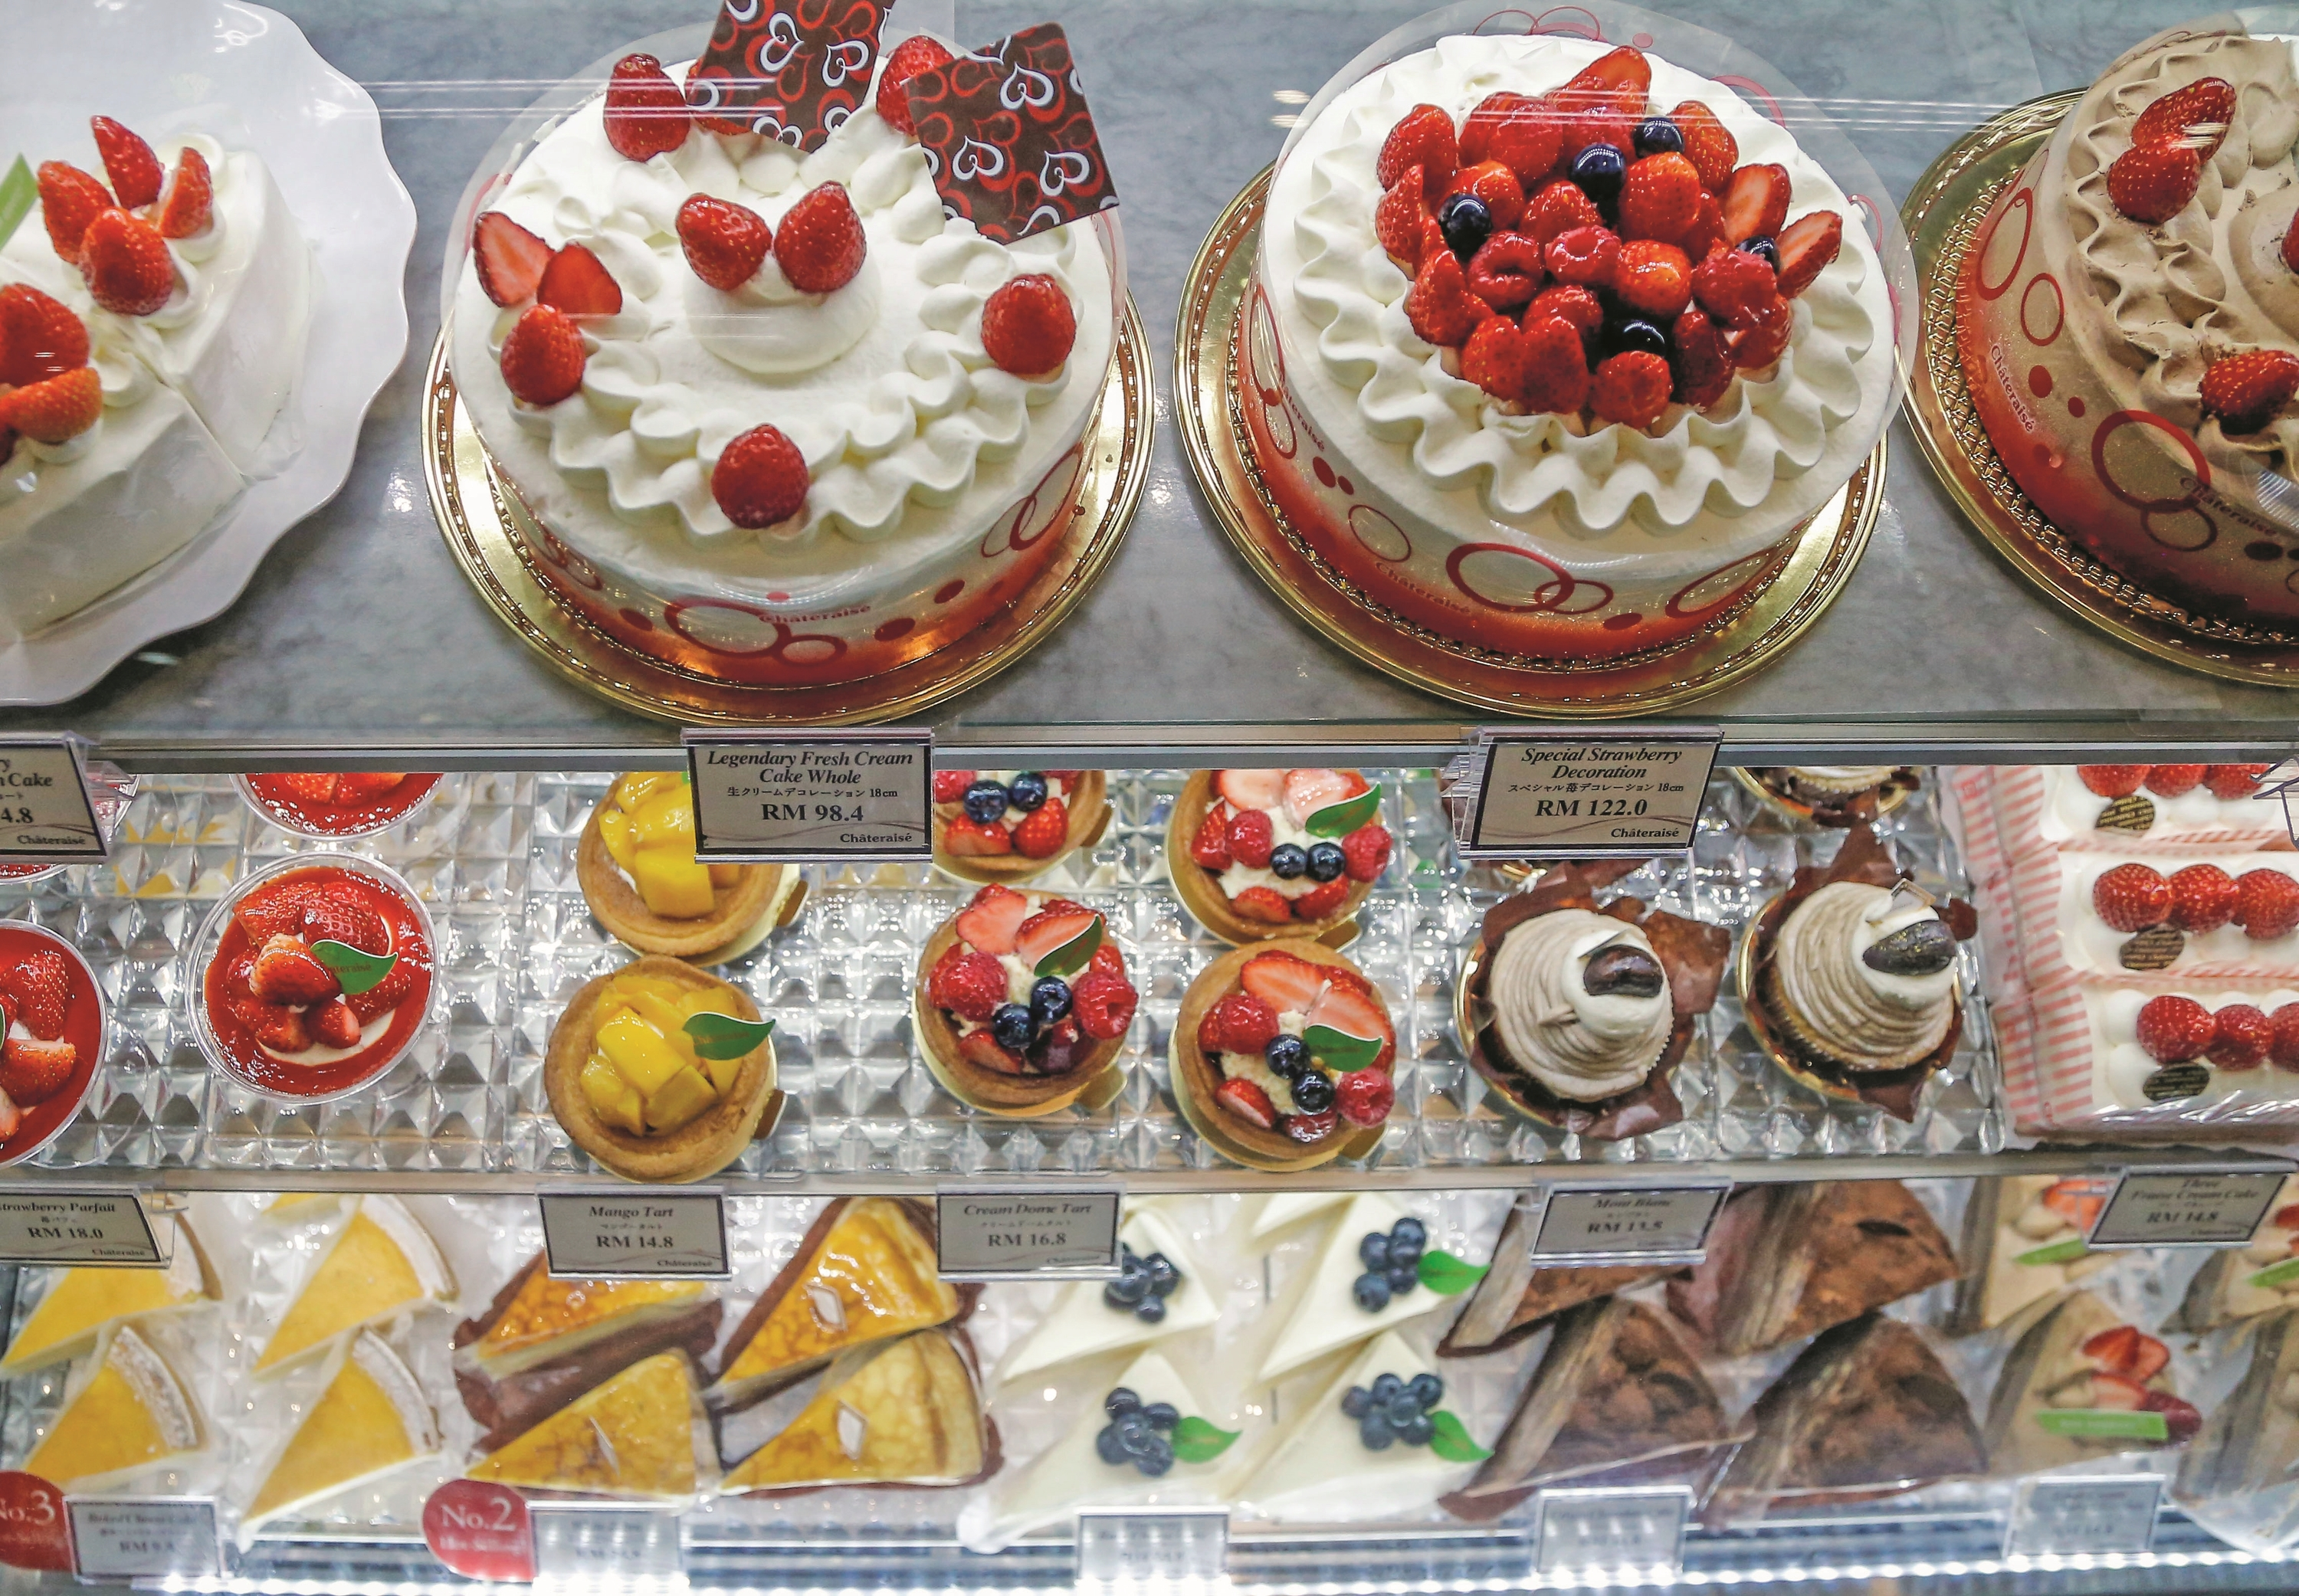 The best places for Japanese desserts in KL